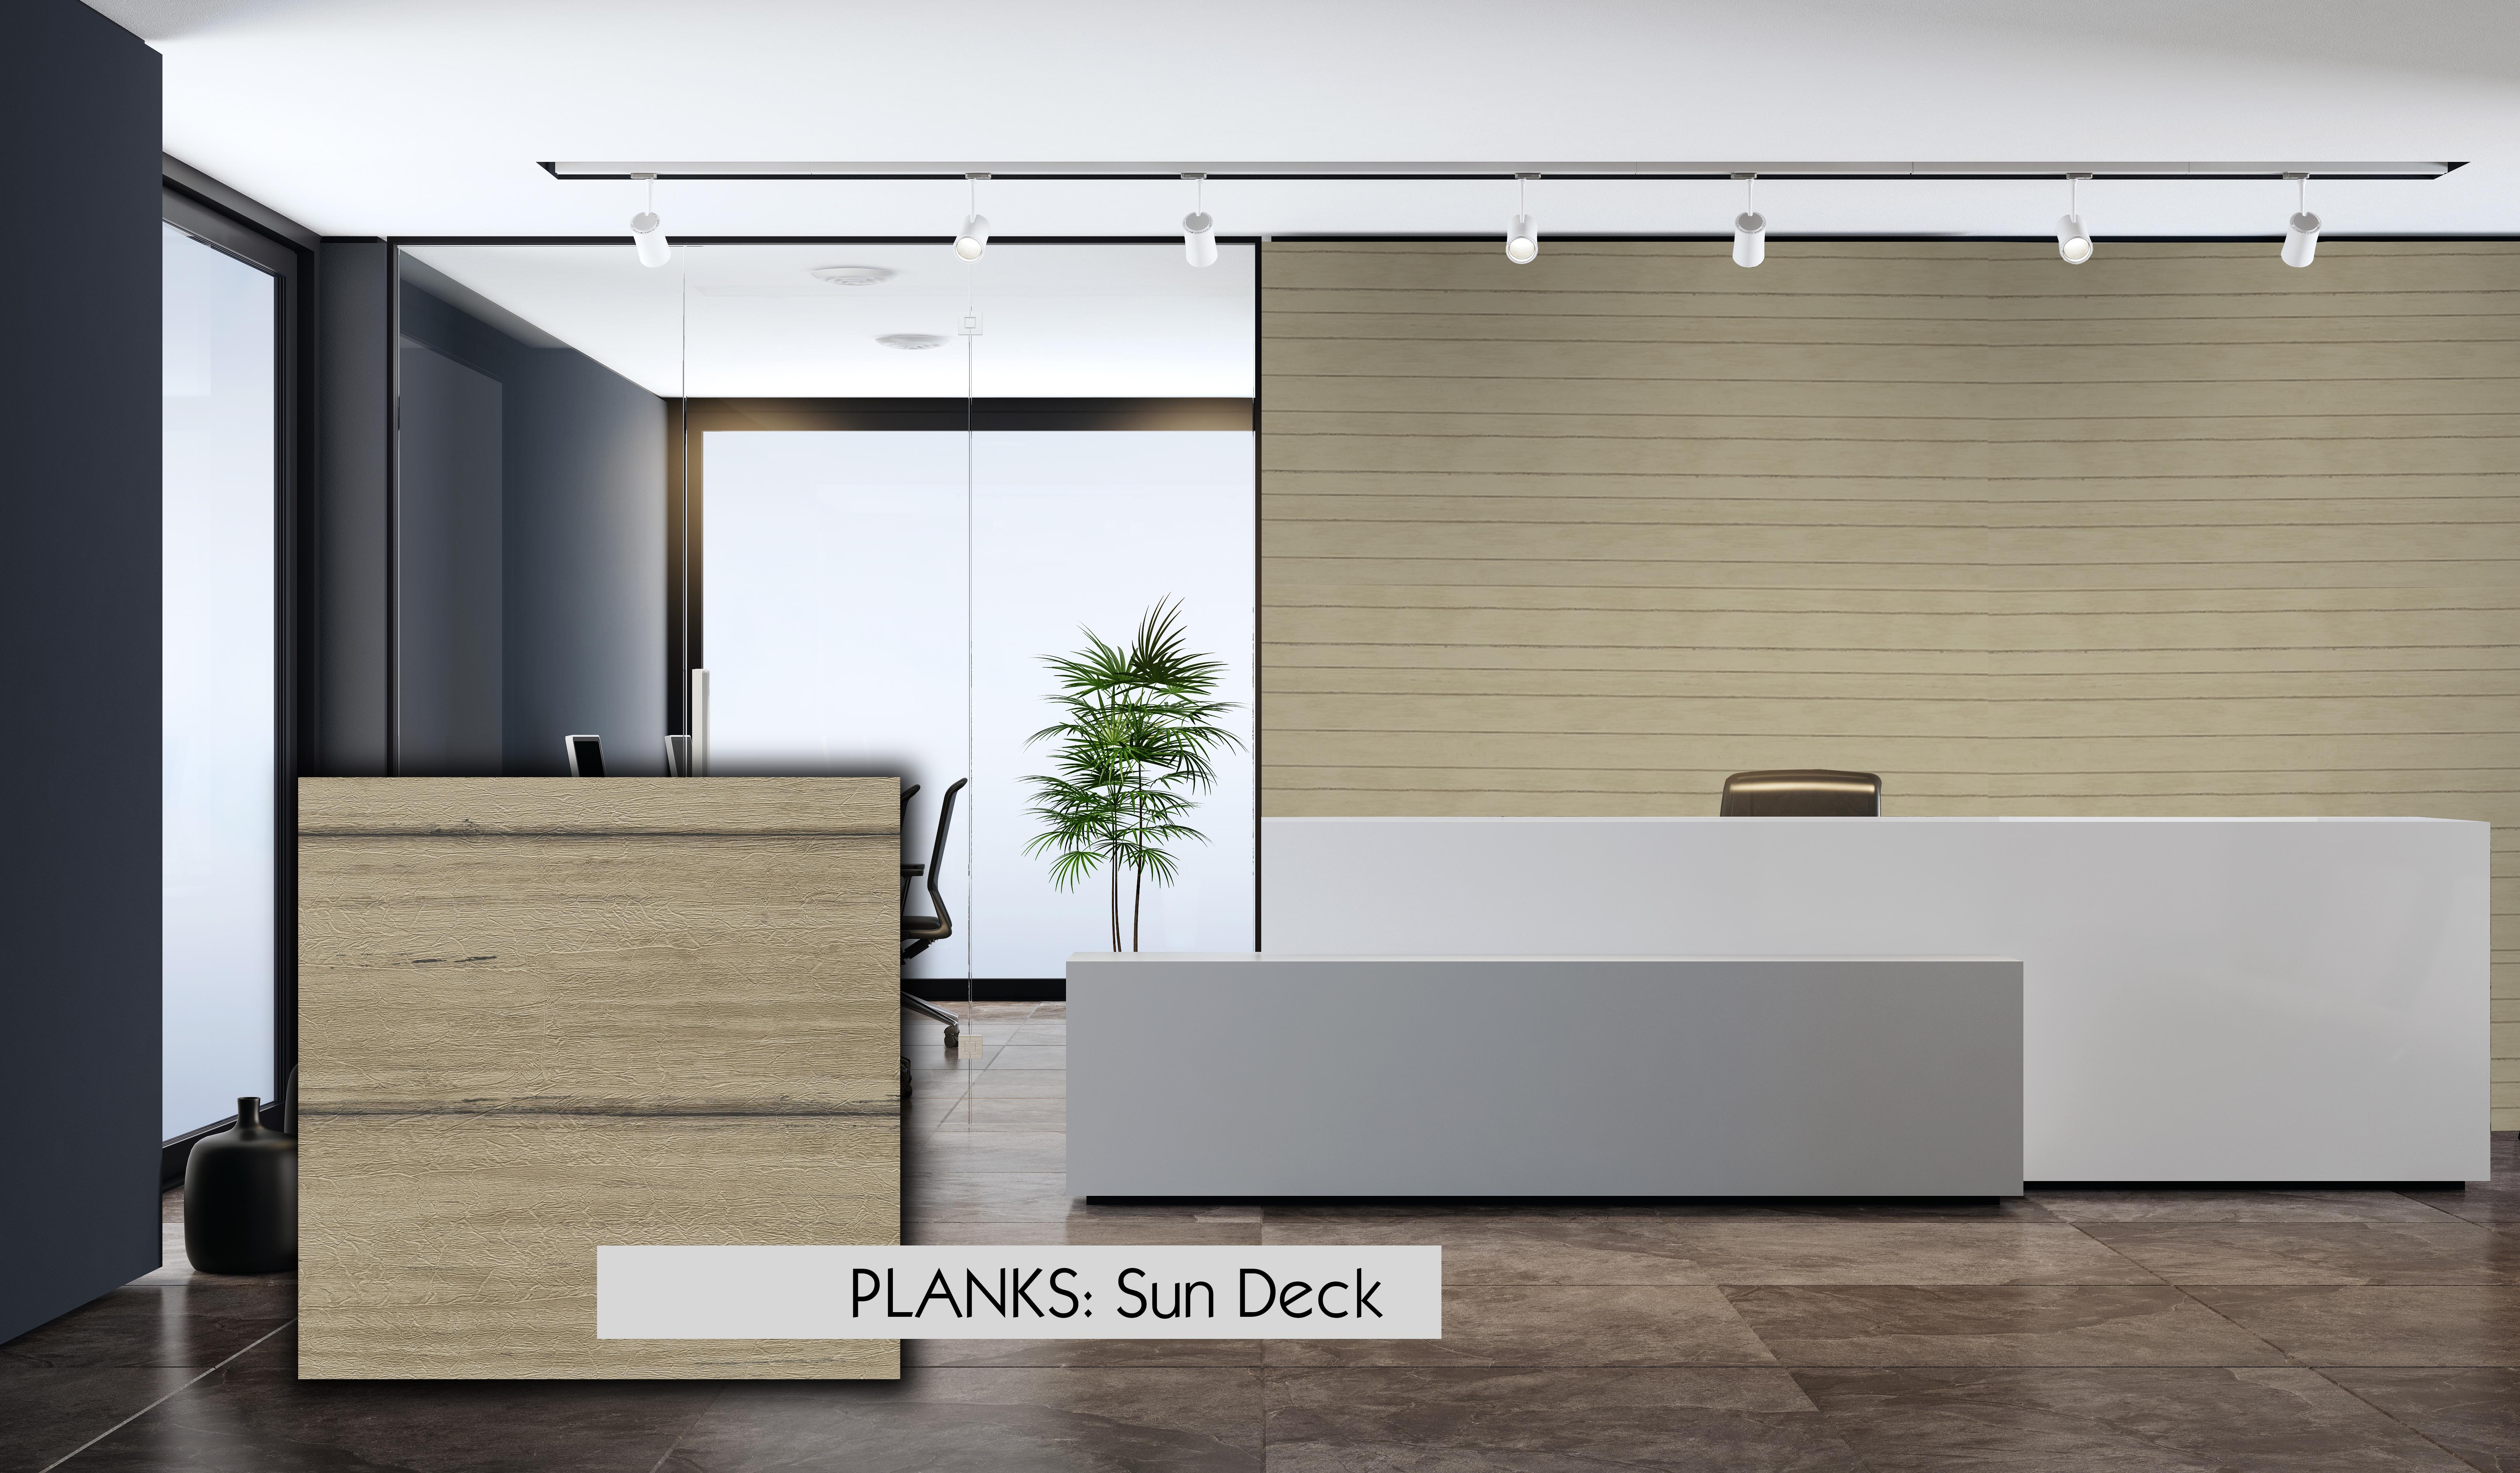 Planks Sun Deck Wallcovering